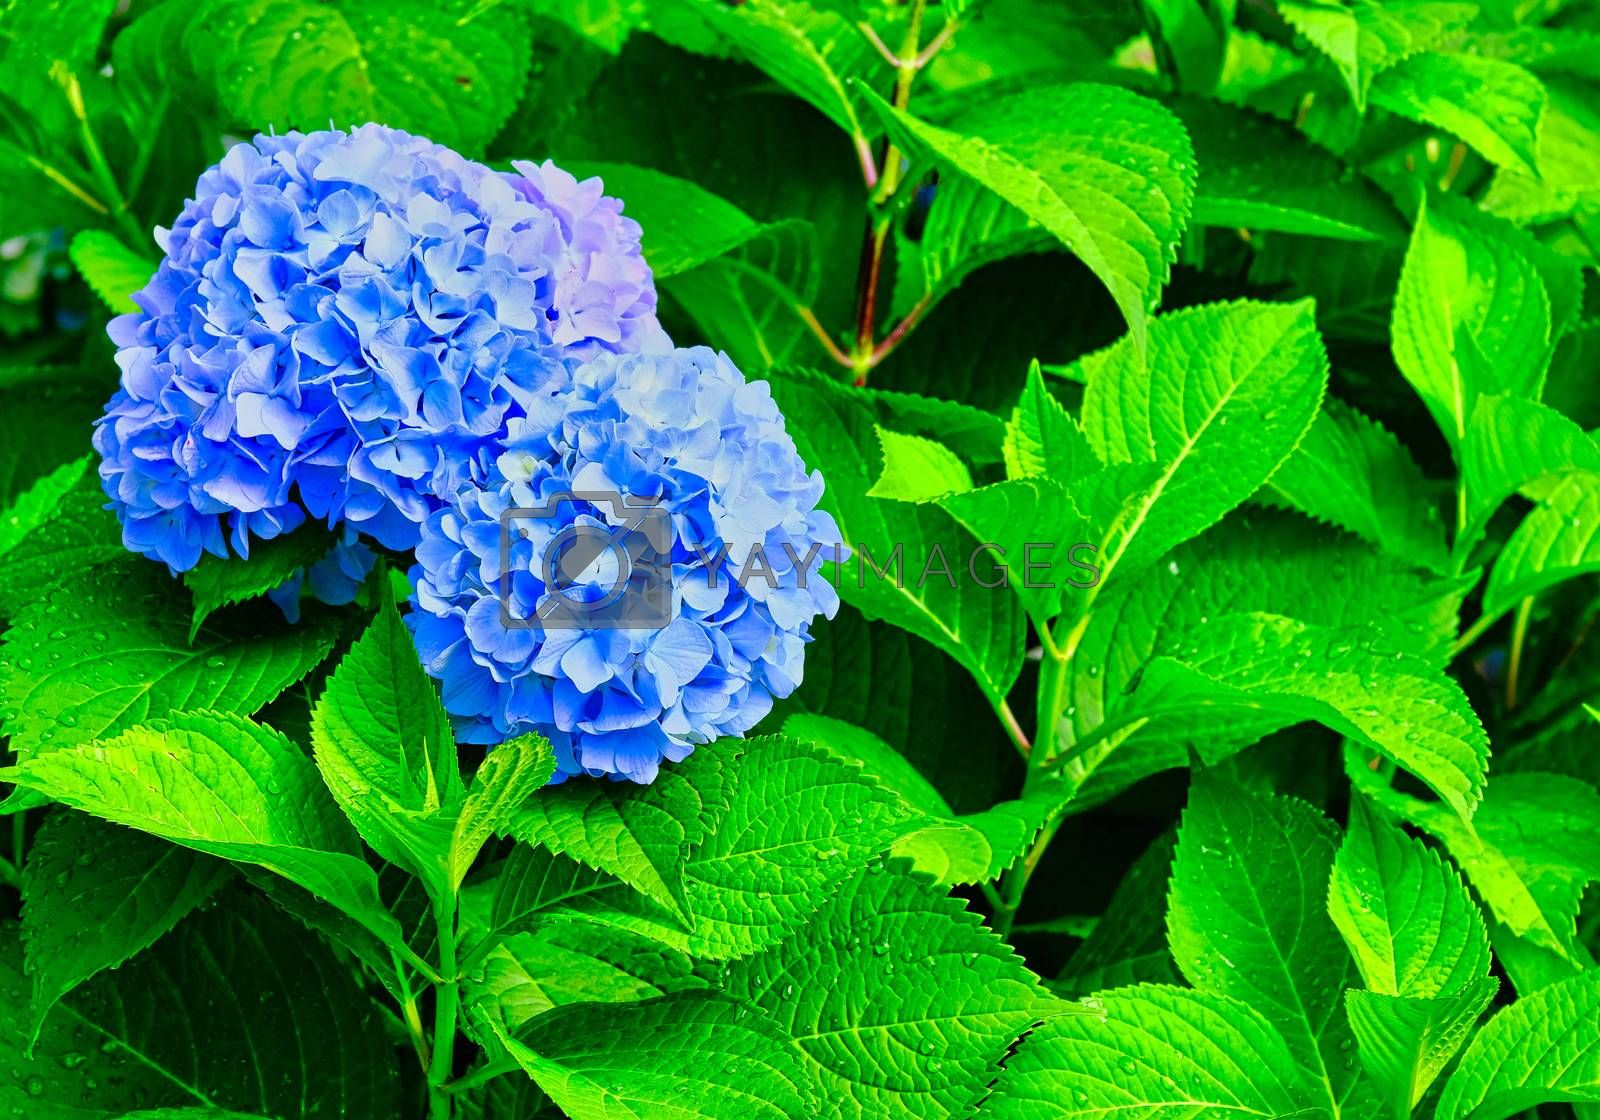 Blue Hydrangea Blooms on Wet Green Leaves After a Summer Rain